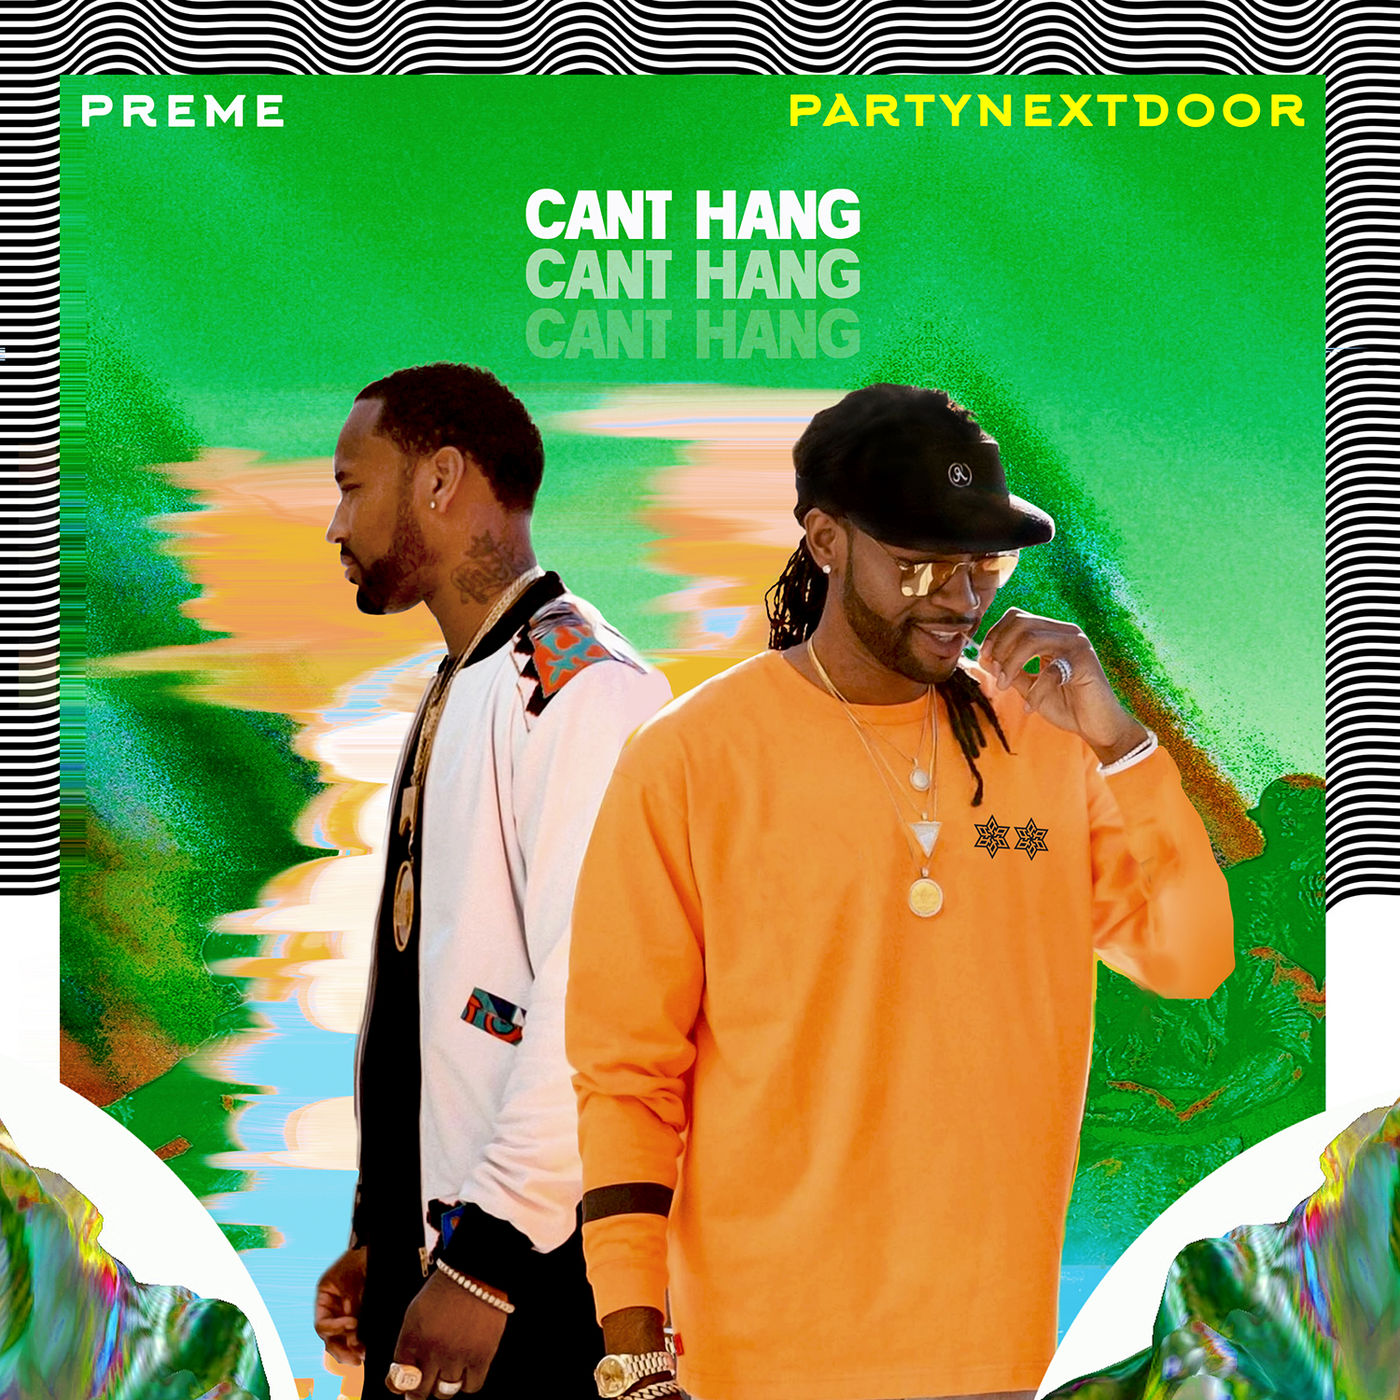 Preme - Can't Hang (feat. PARTYNEXTDOOR) - Single